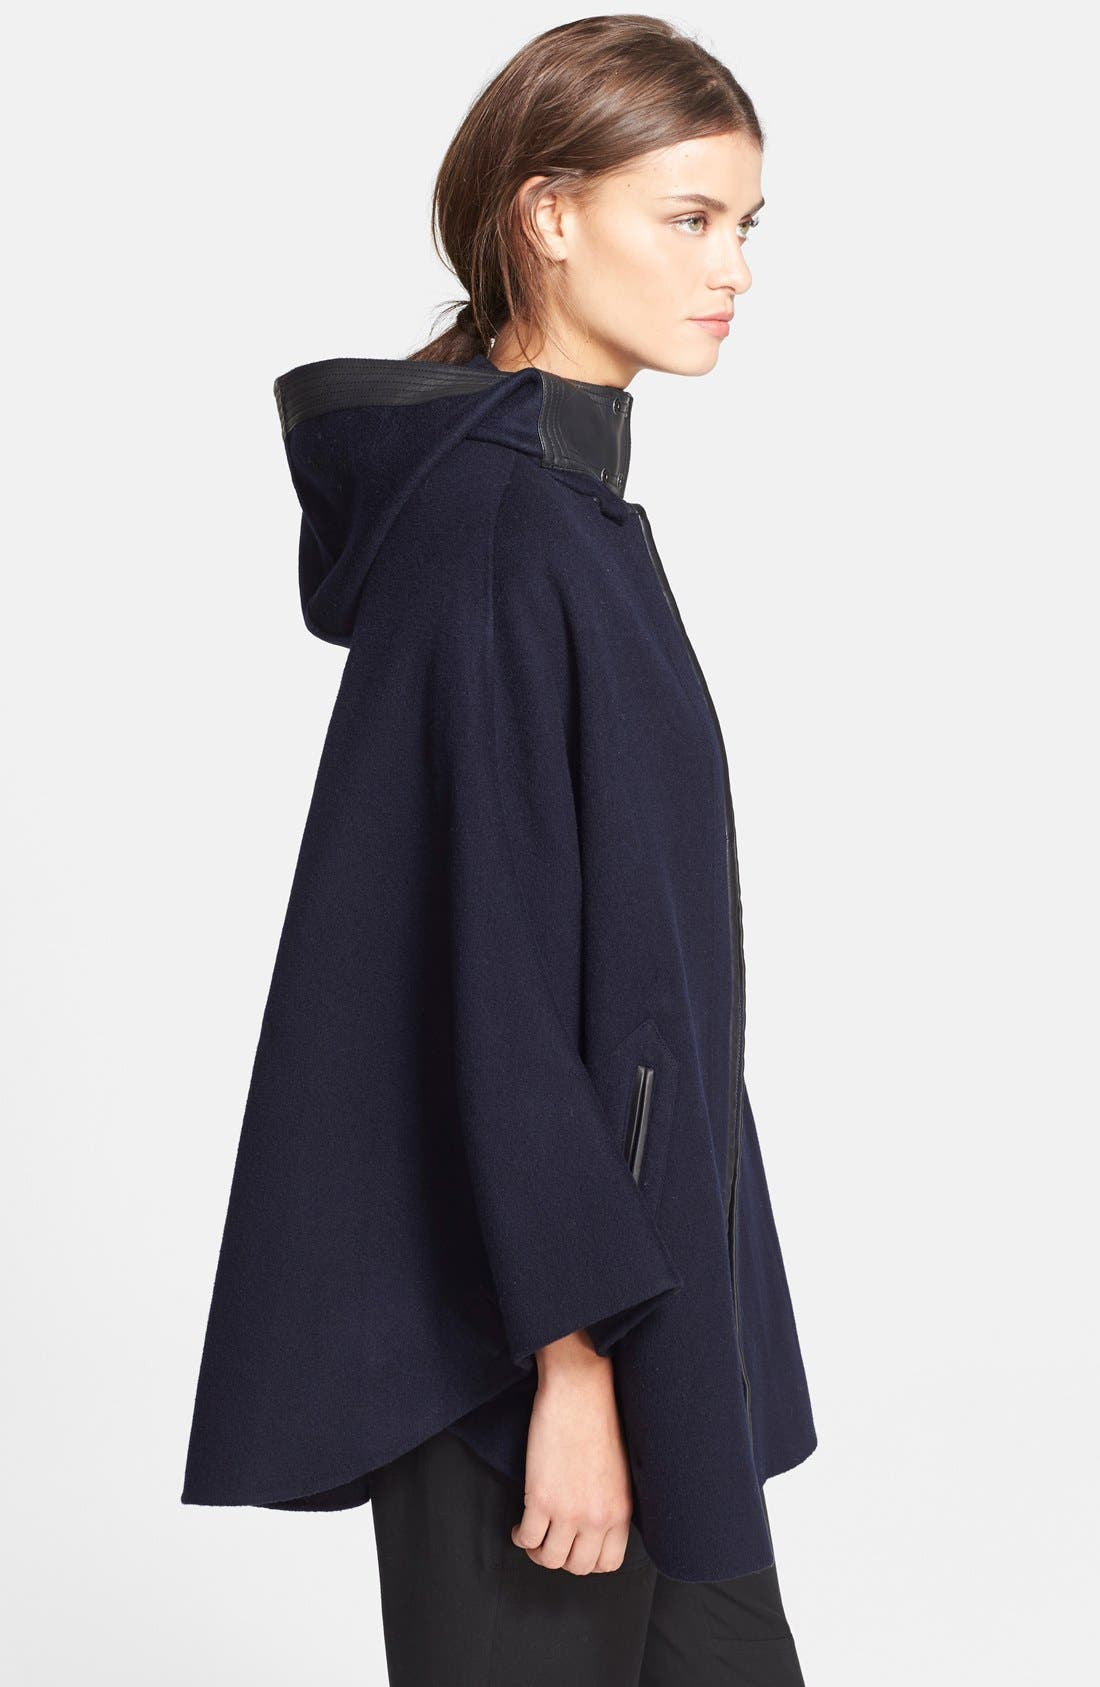 Hooded Wool Blend Cape with Leather Trim,                             Alternate thumbnail 4, color,                             470